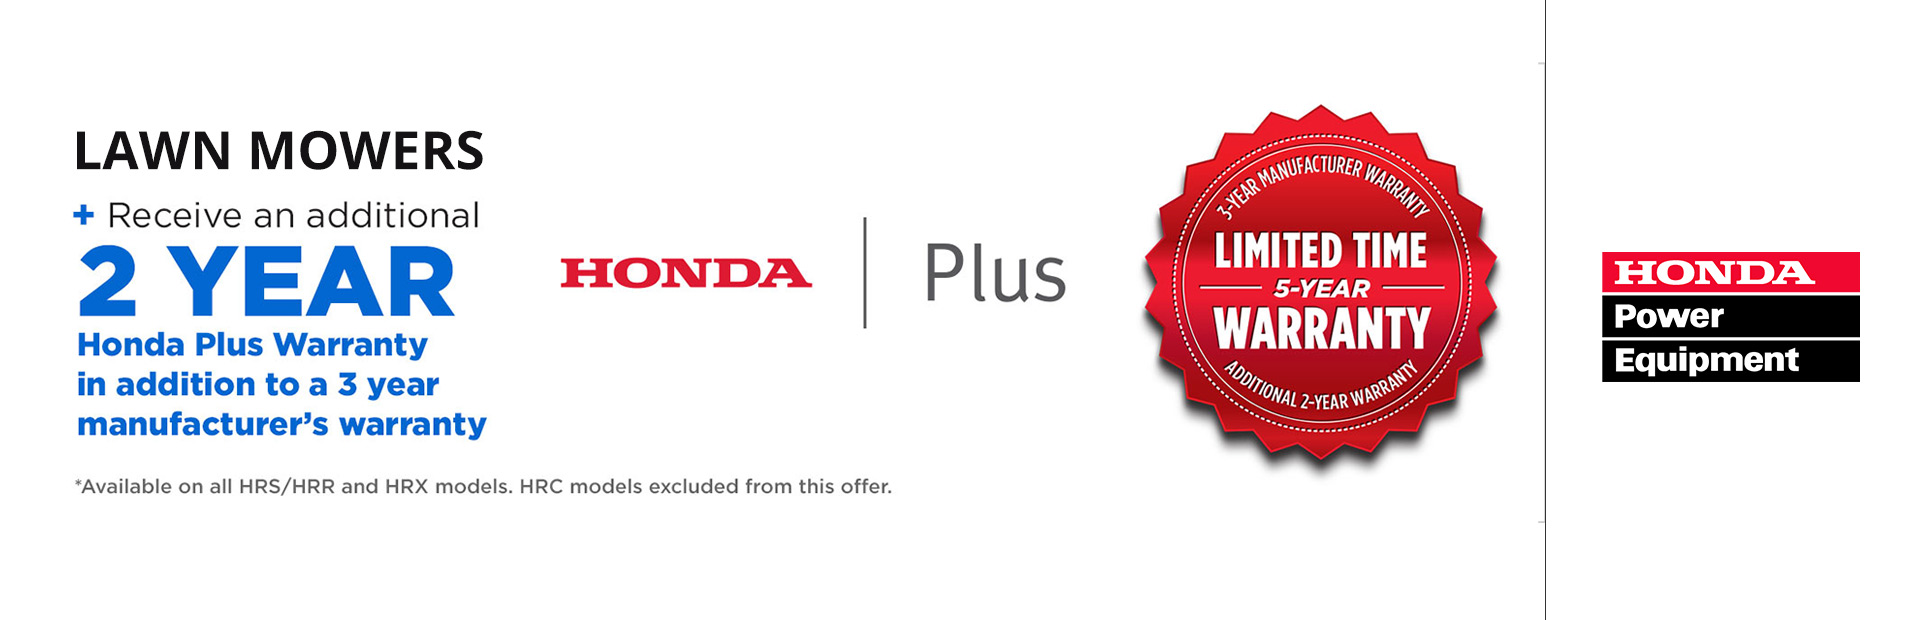 Honda Power Equipment: Lawnmower Extended Warranty Offer